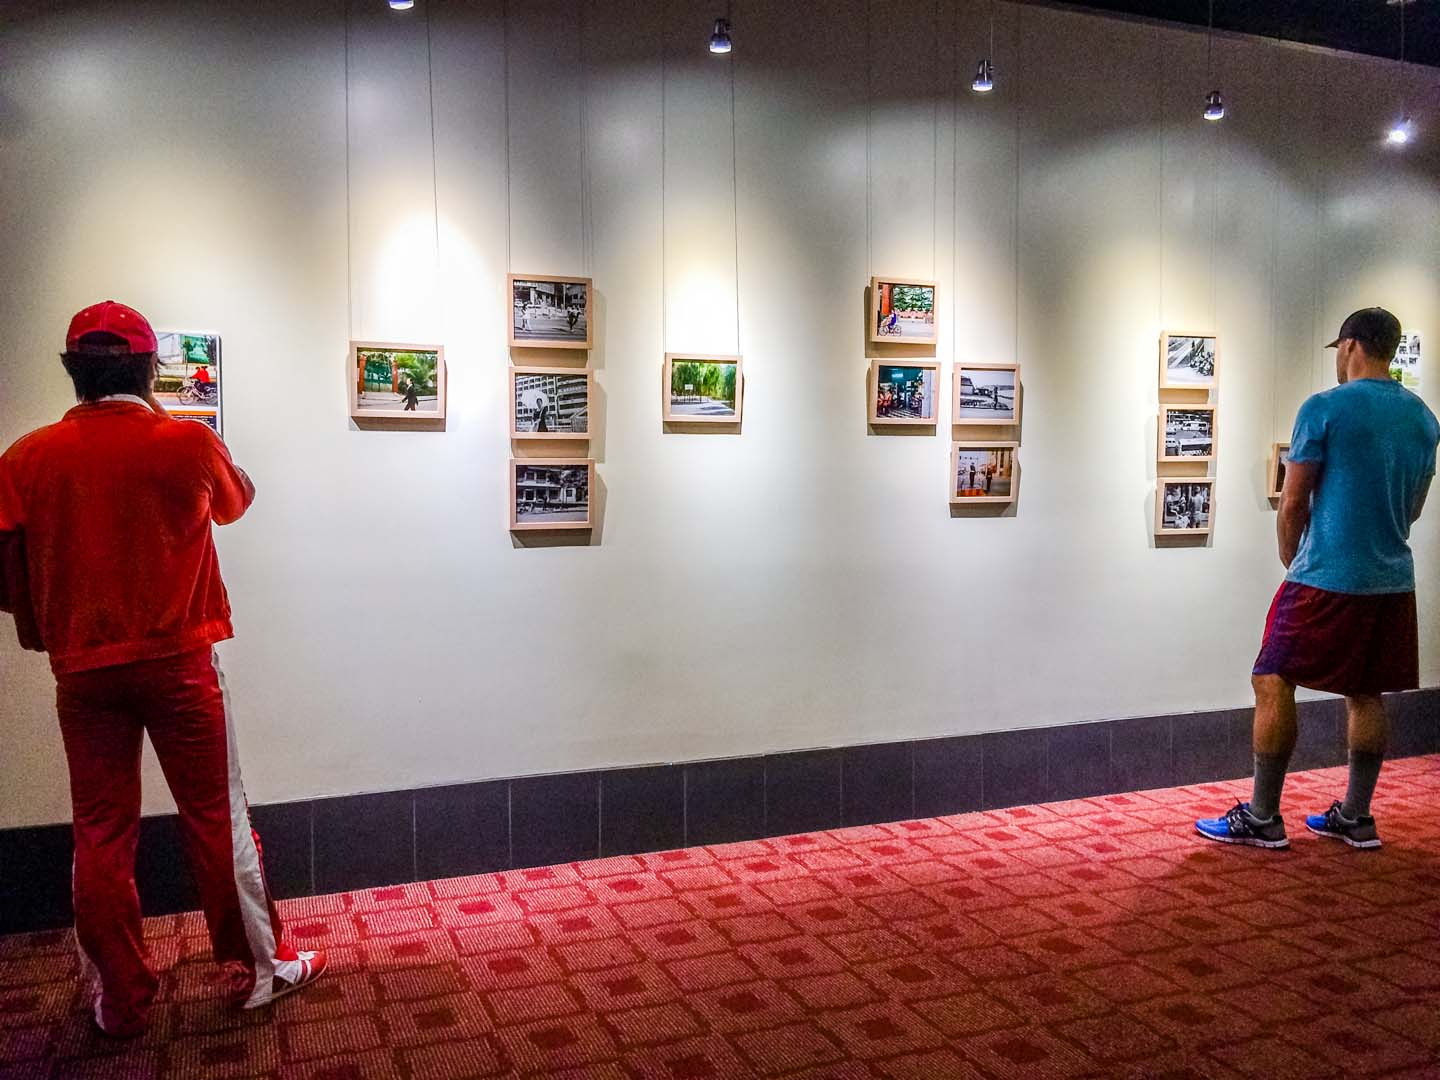 A man in a red track suit reads the artist statement at a photography exhibition while another man in sportswear looks closely at a photograph inside the ArcLight Culver City movie theatre.